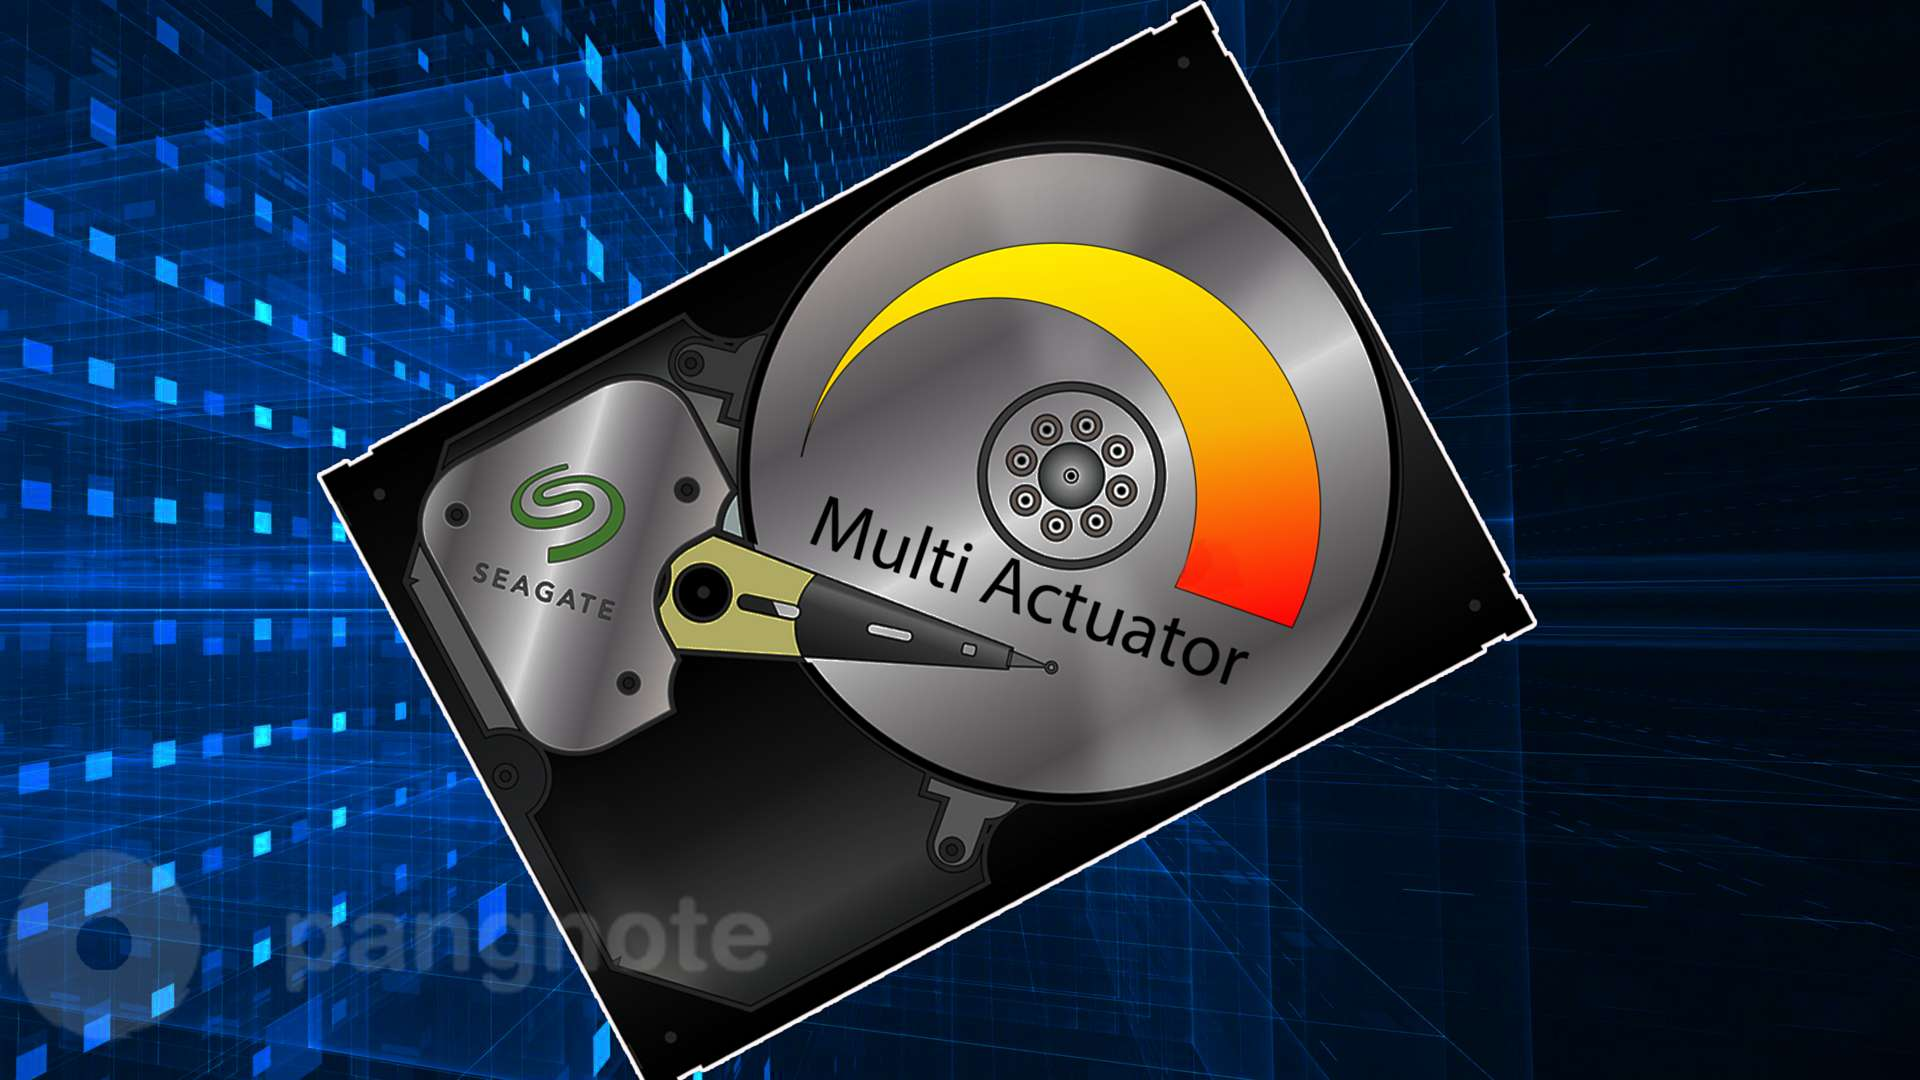 Multi Actuator technology allows you to double the performance of HDD